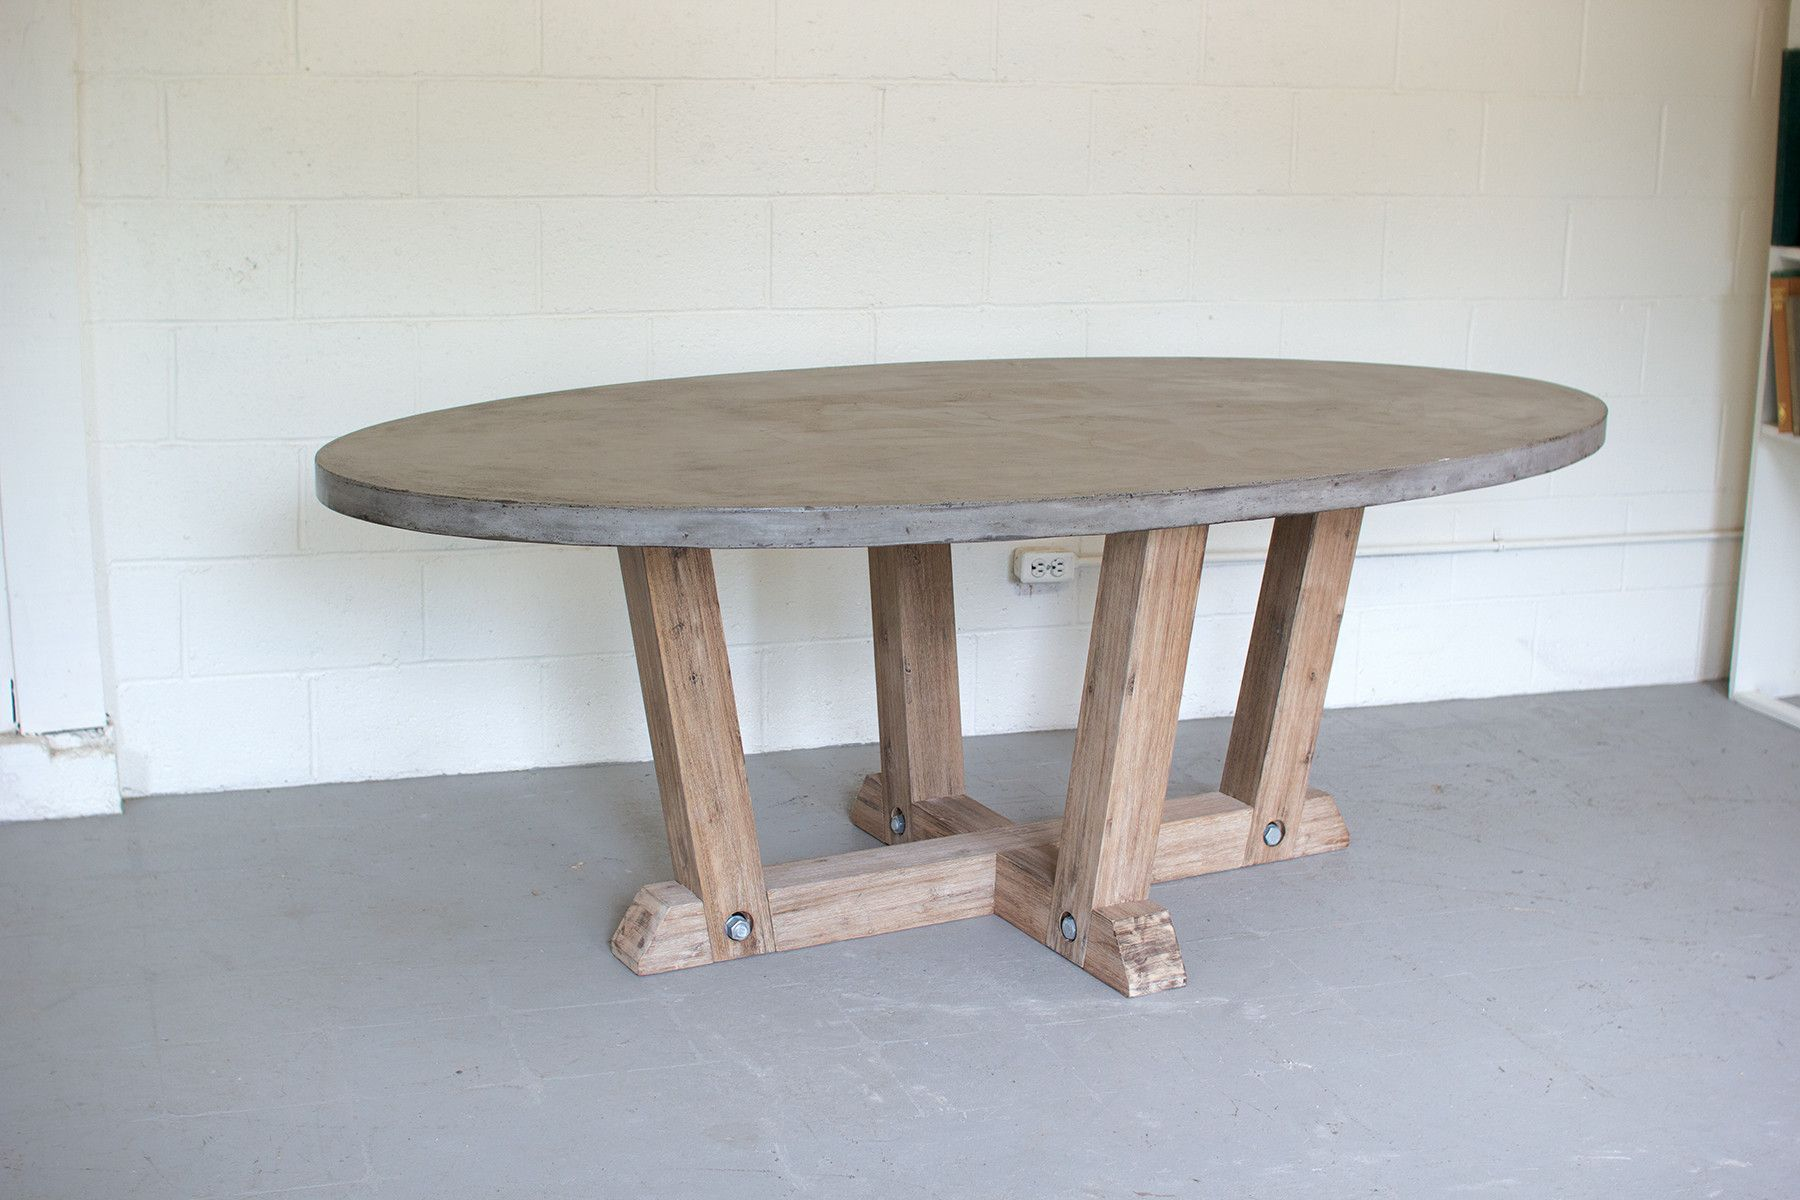 Numero 3 Concrete Dining Table With Wood Base Oval Table Dining Oval Kitchen Table Fall Kitchen Table Decor